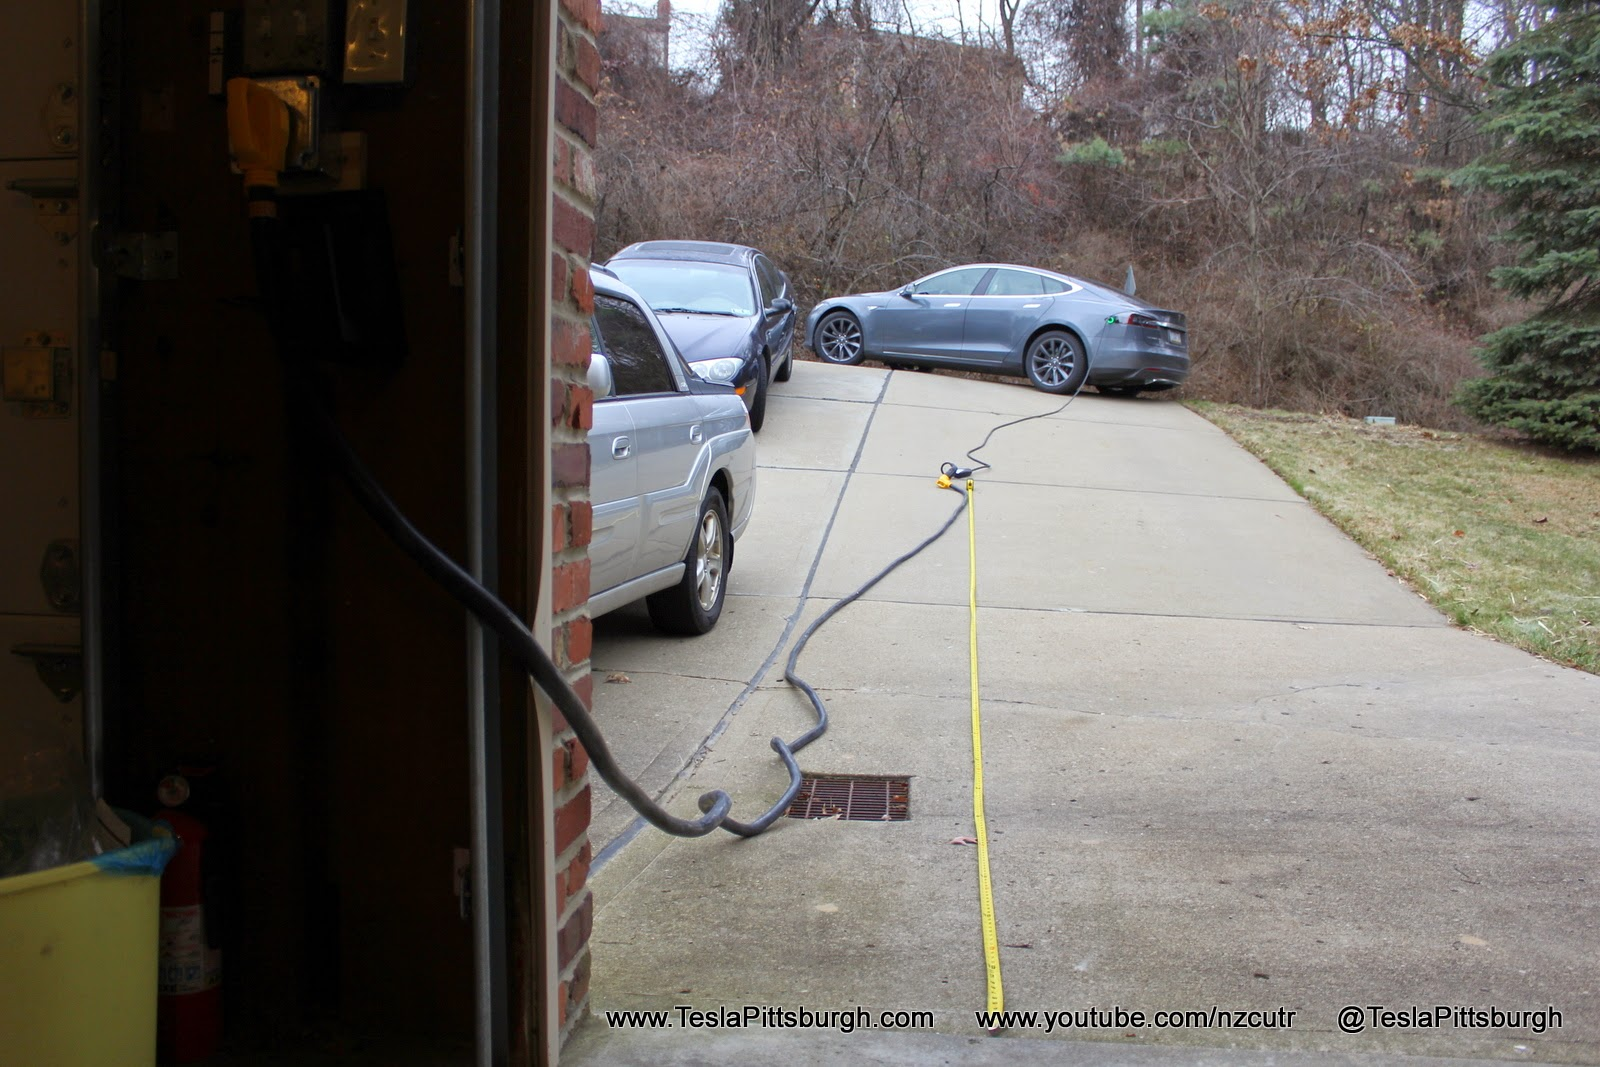 Tesla Umc Extension Cord Via Camco 50 Amp 30 Powergrip Cooker Wiring Video Youtube The Ultimate